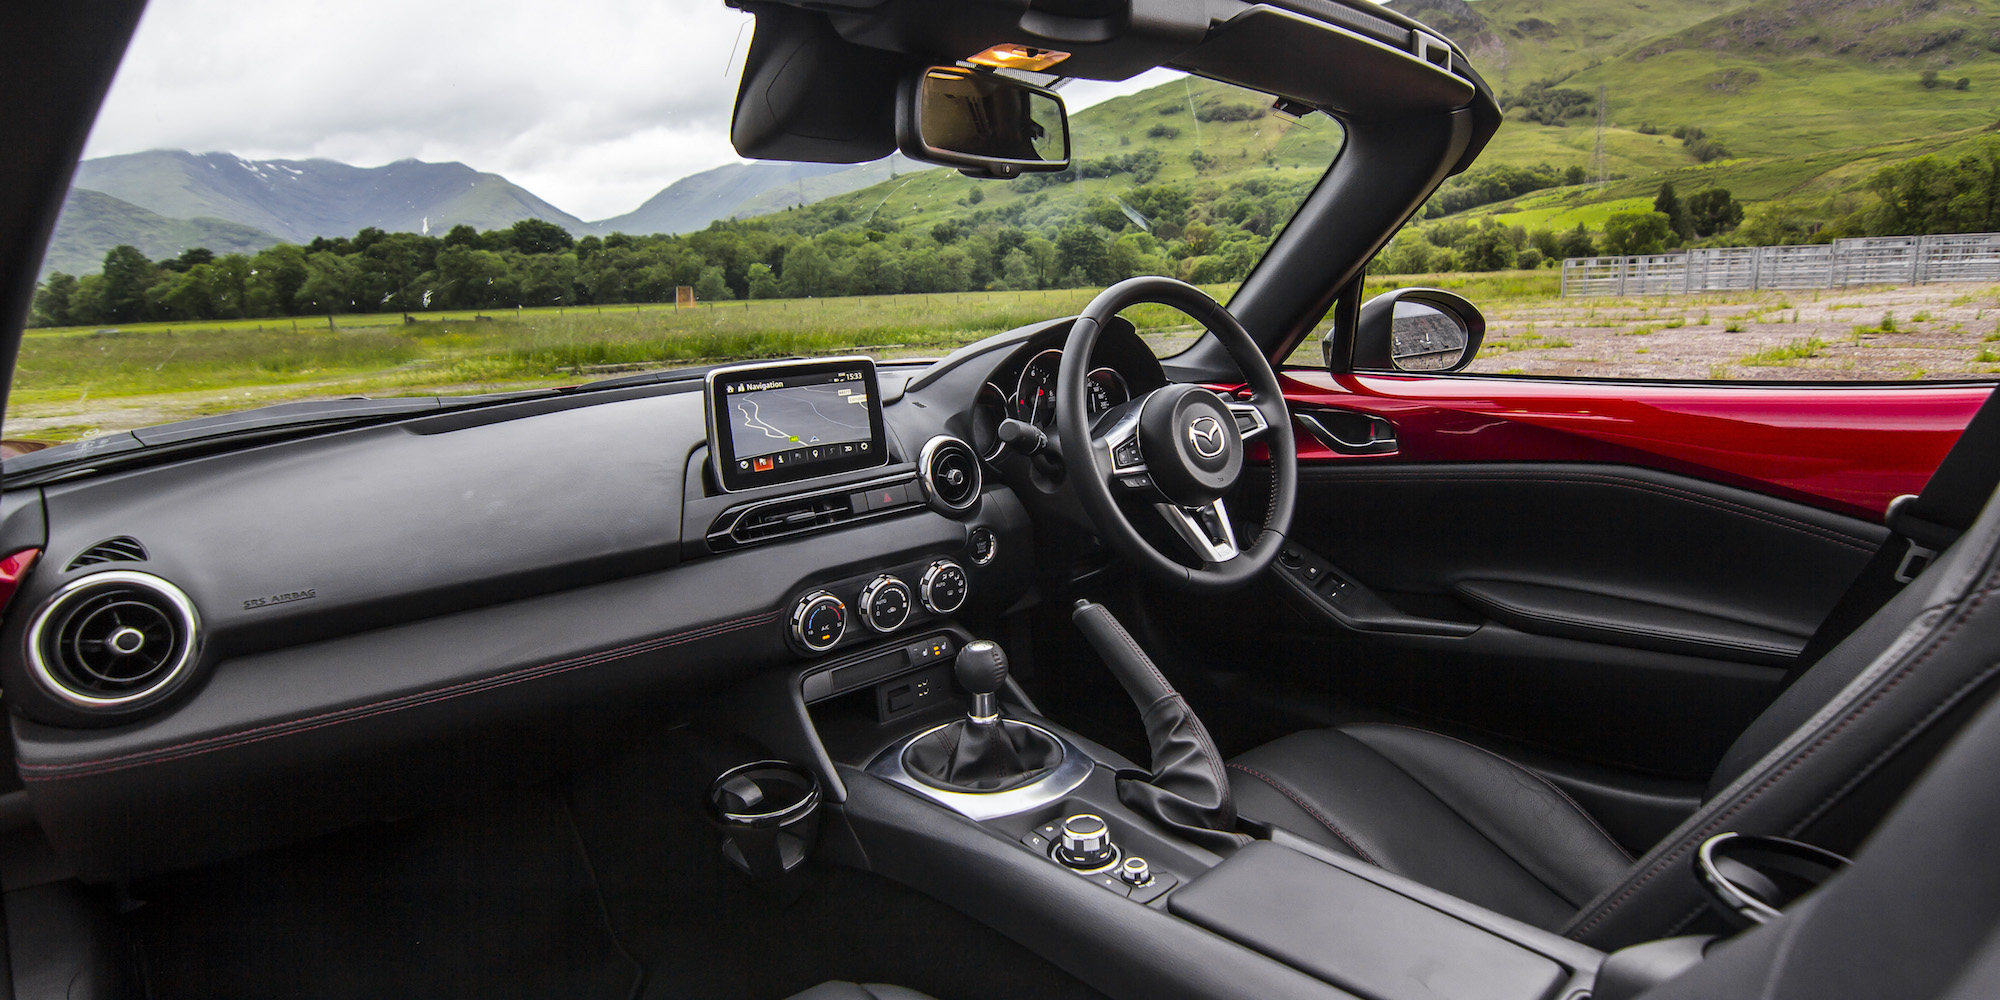 2016 Mazda Mx 5 Interior Preview (Photo 23 of 31)